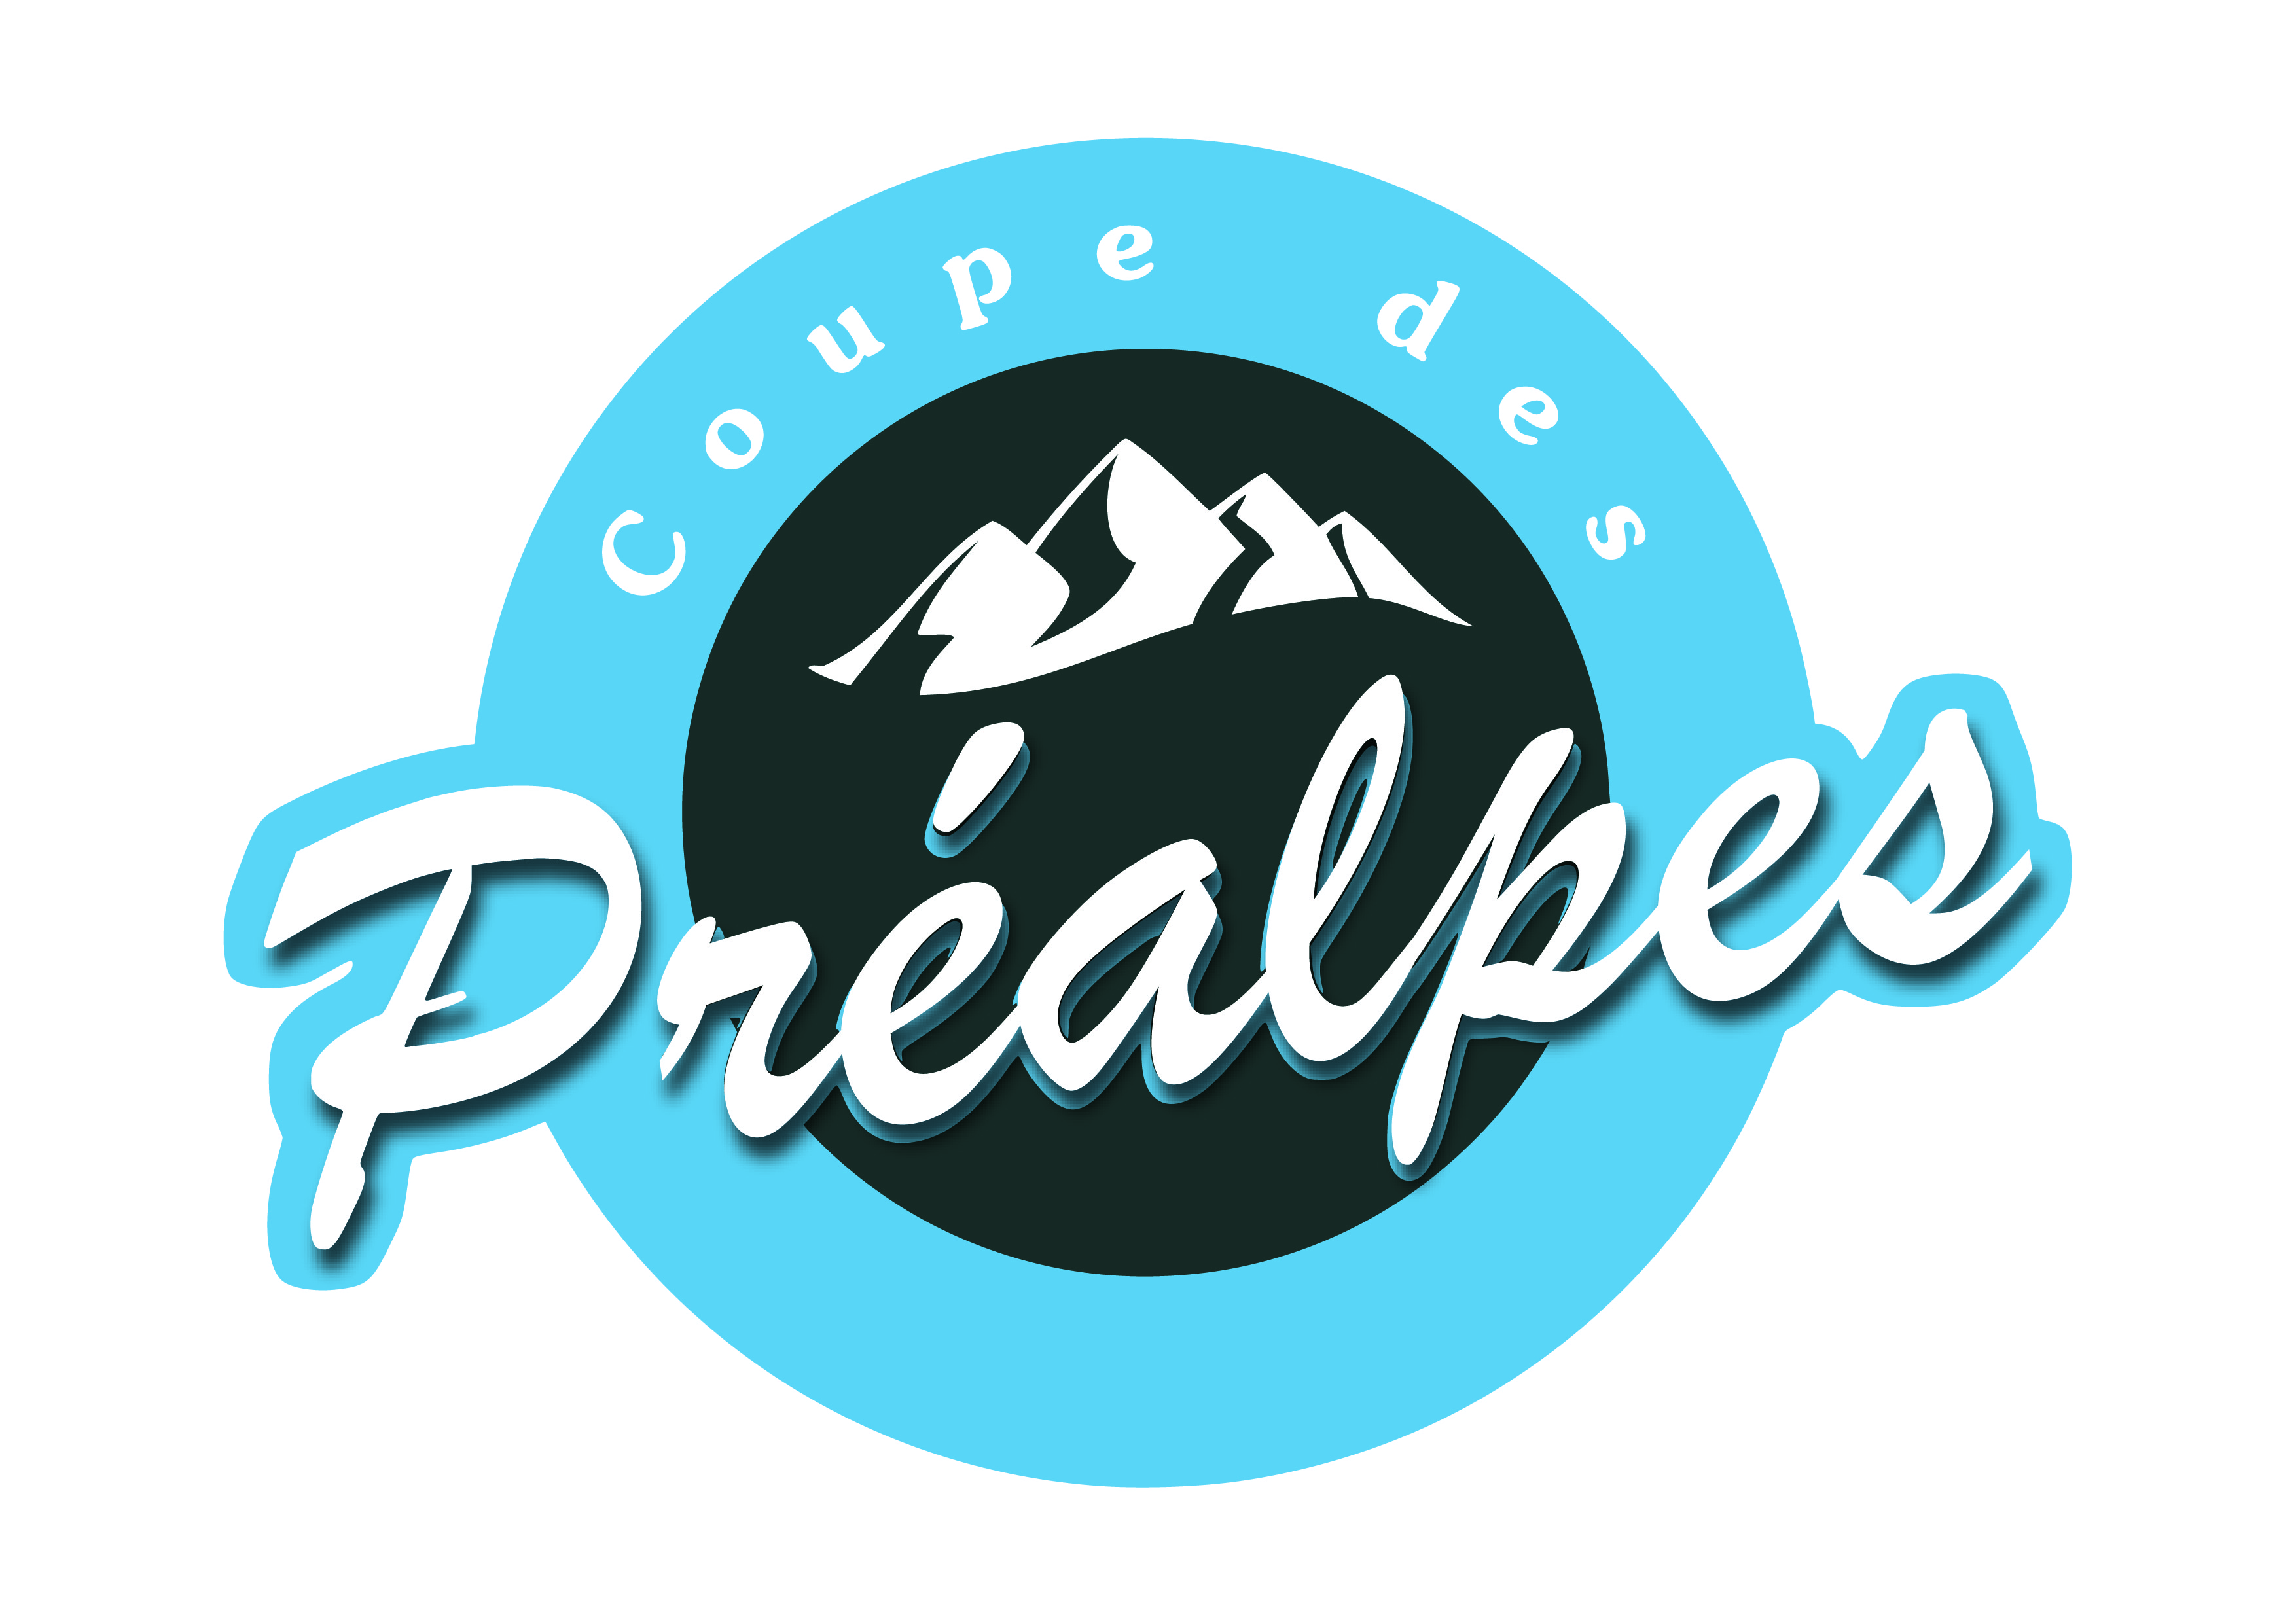 Media: Image_courses/2019/CoupePrealpes-01.jpg